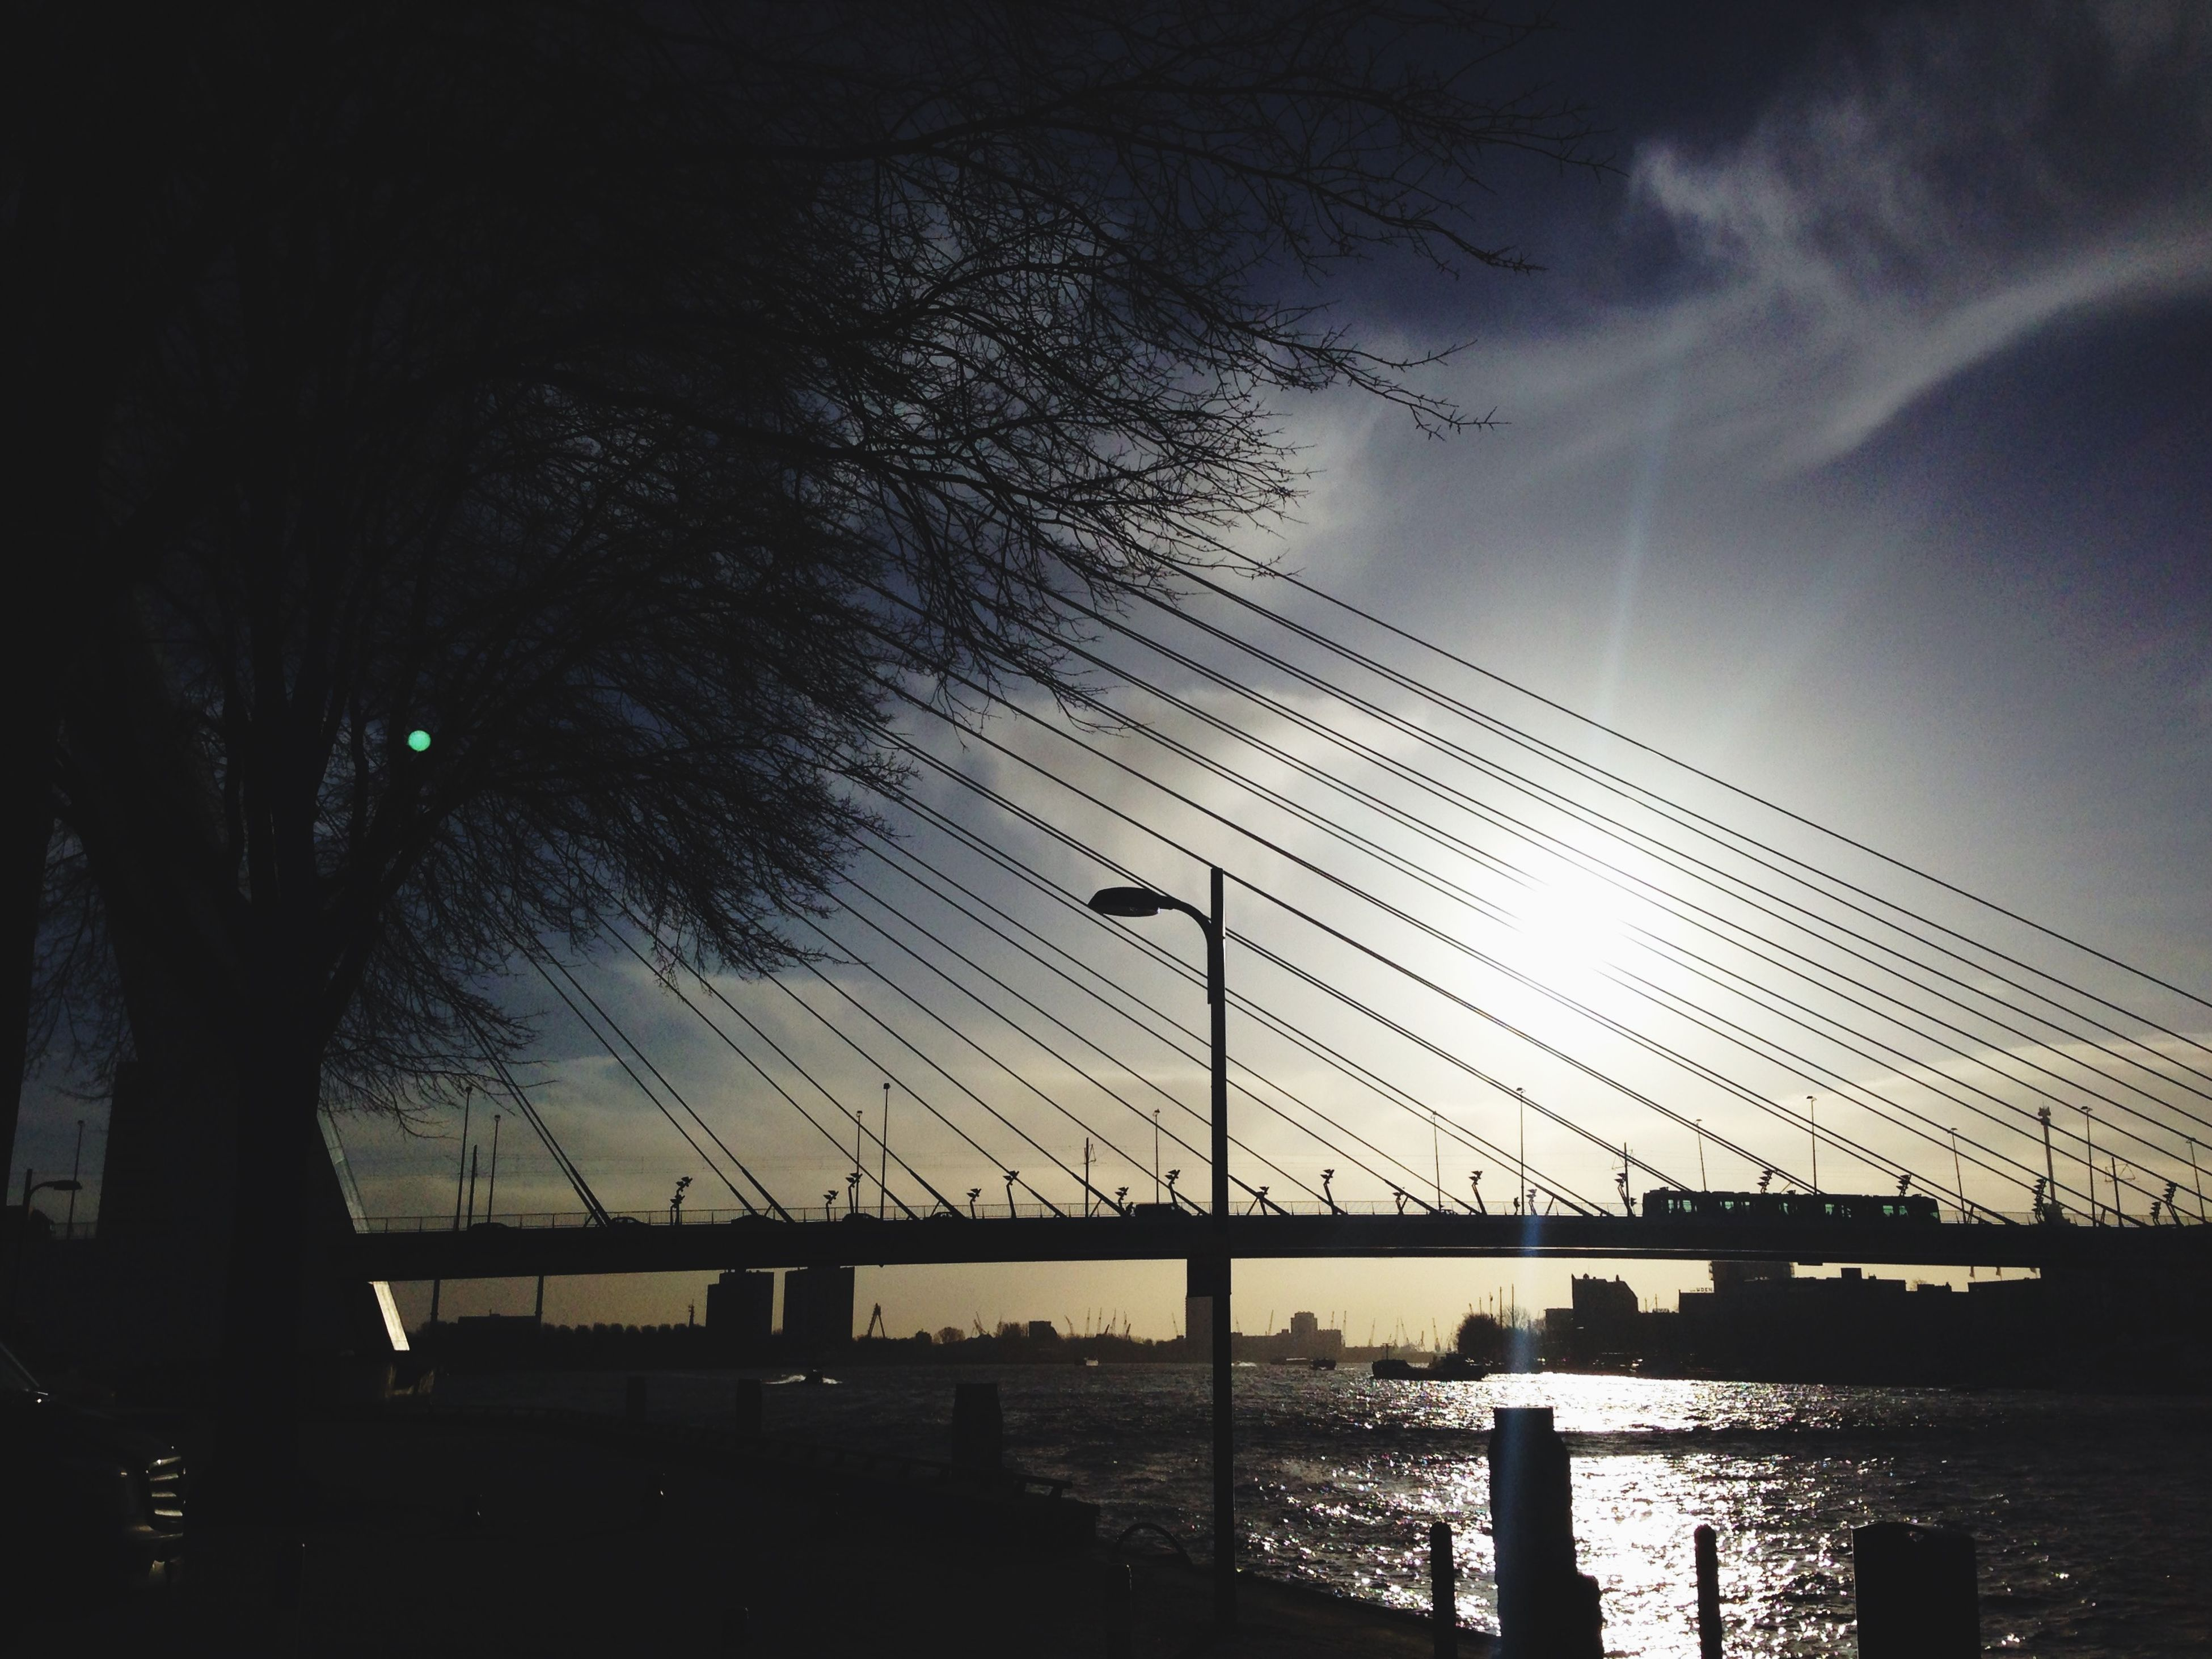 connection, water, bridge - man made structure, built structure, architecture, sky, silhouette, river, sunset, bridge, engineering, transportation, cloud - sky, waterfront, suspension bridge, dusk, city, nature, reflection, outdoors